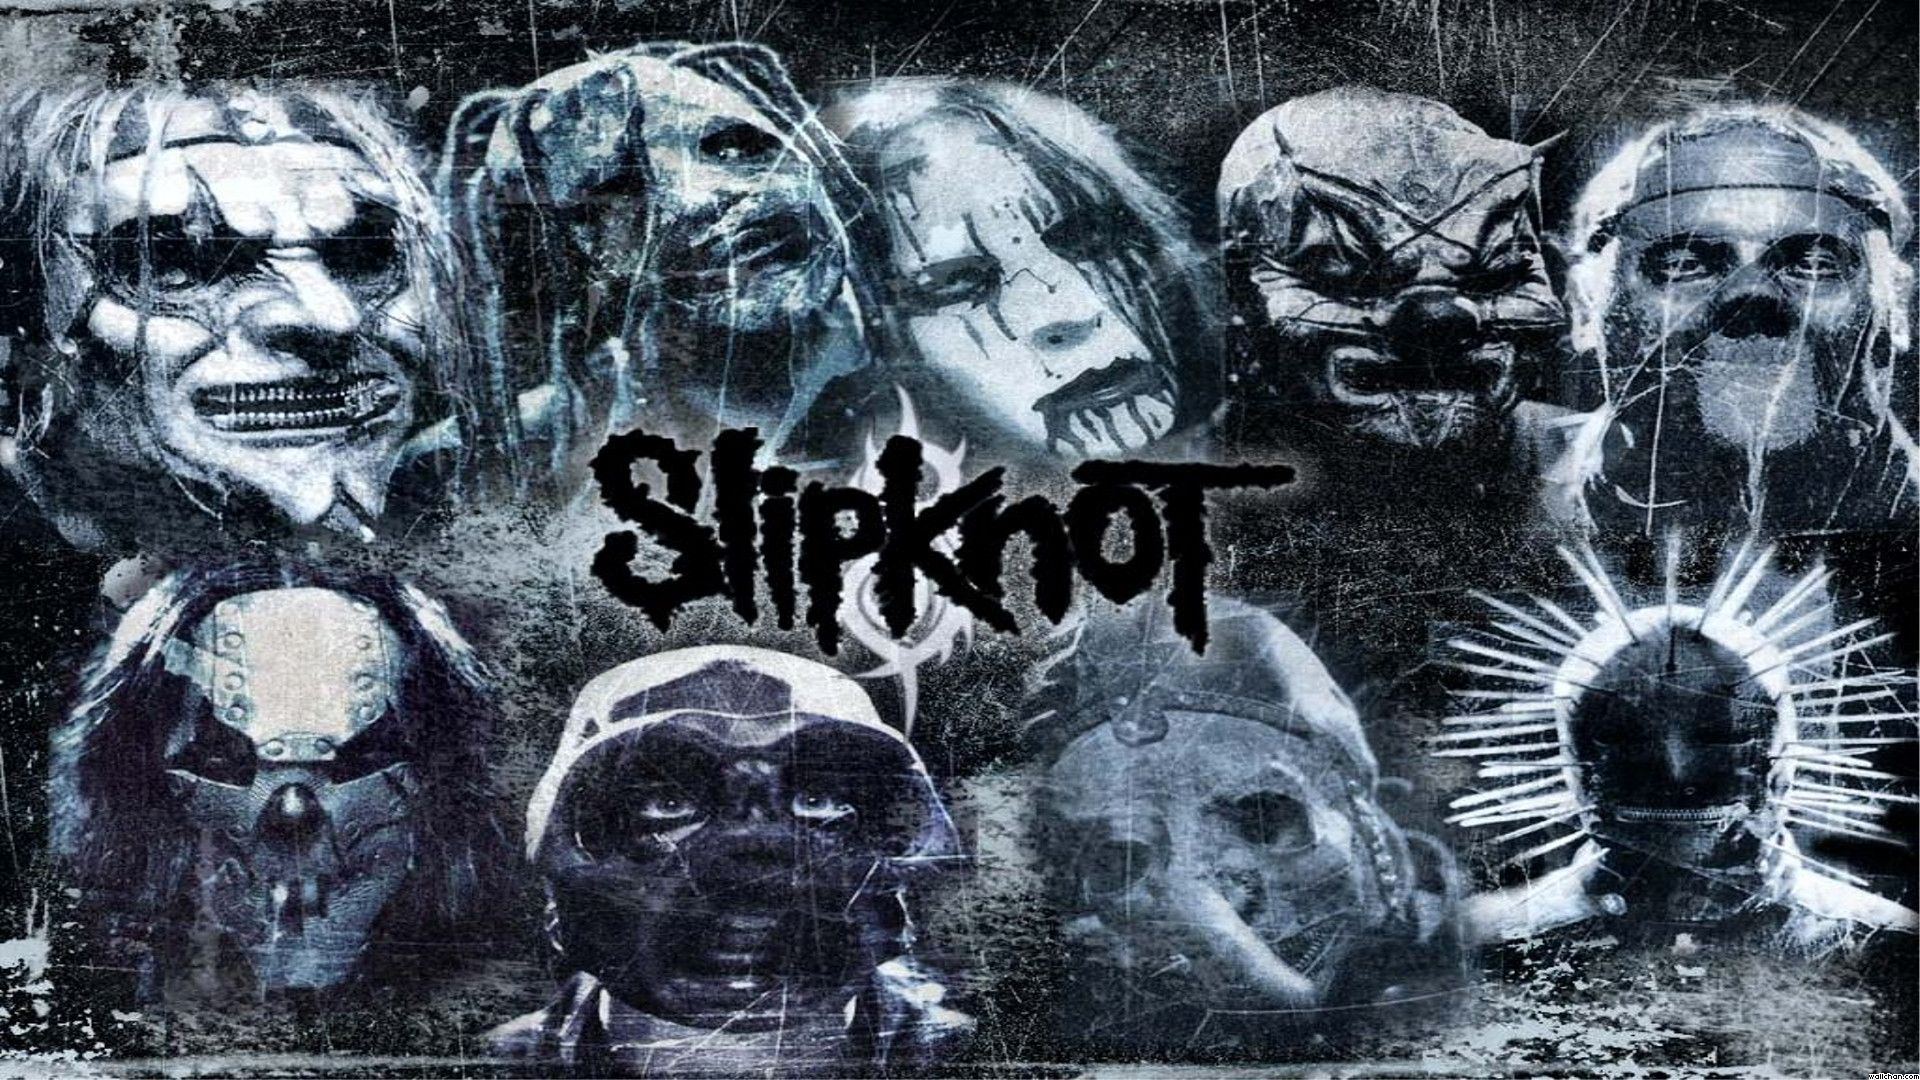 Slipknot HD Wallpaper Slipknot Pictures Cool Wallpapers 1920x1080